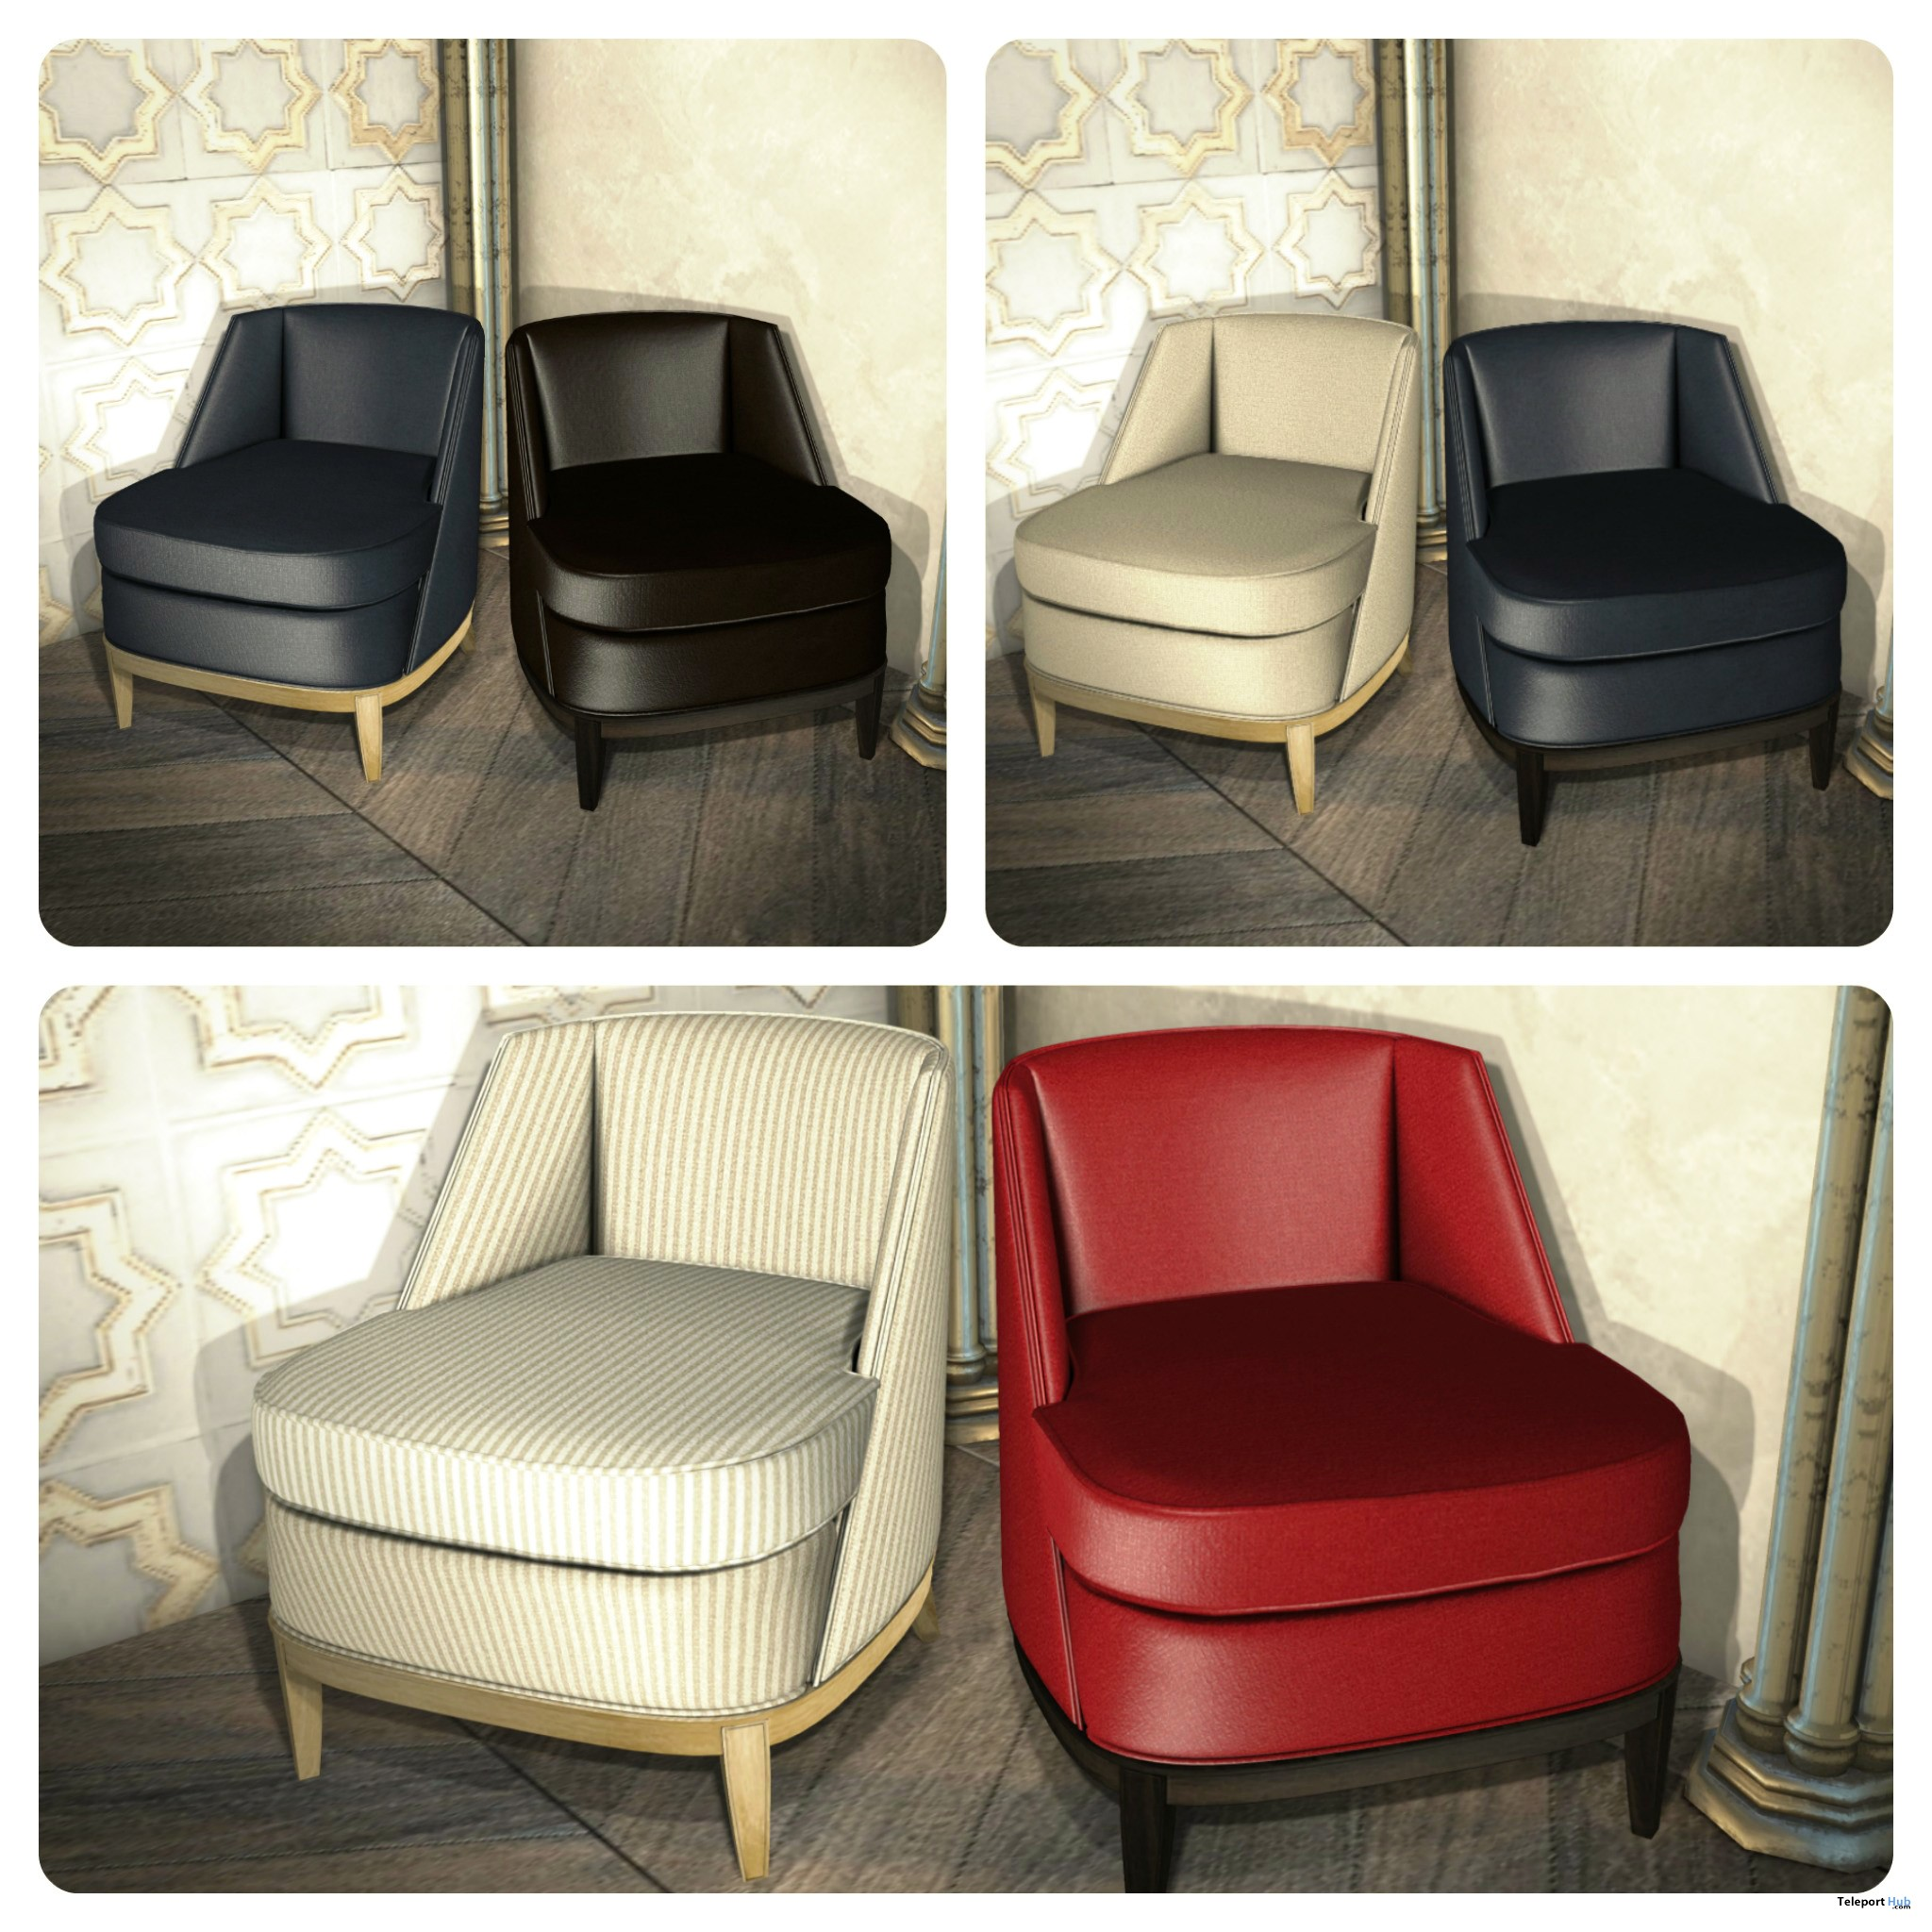 ... New Release: Upholstered Slipper Chair [Adult] U0026 [PG] By [satus